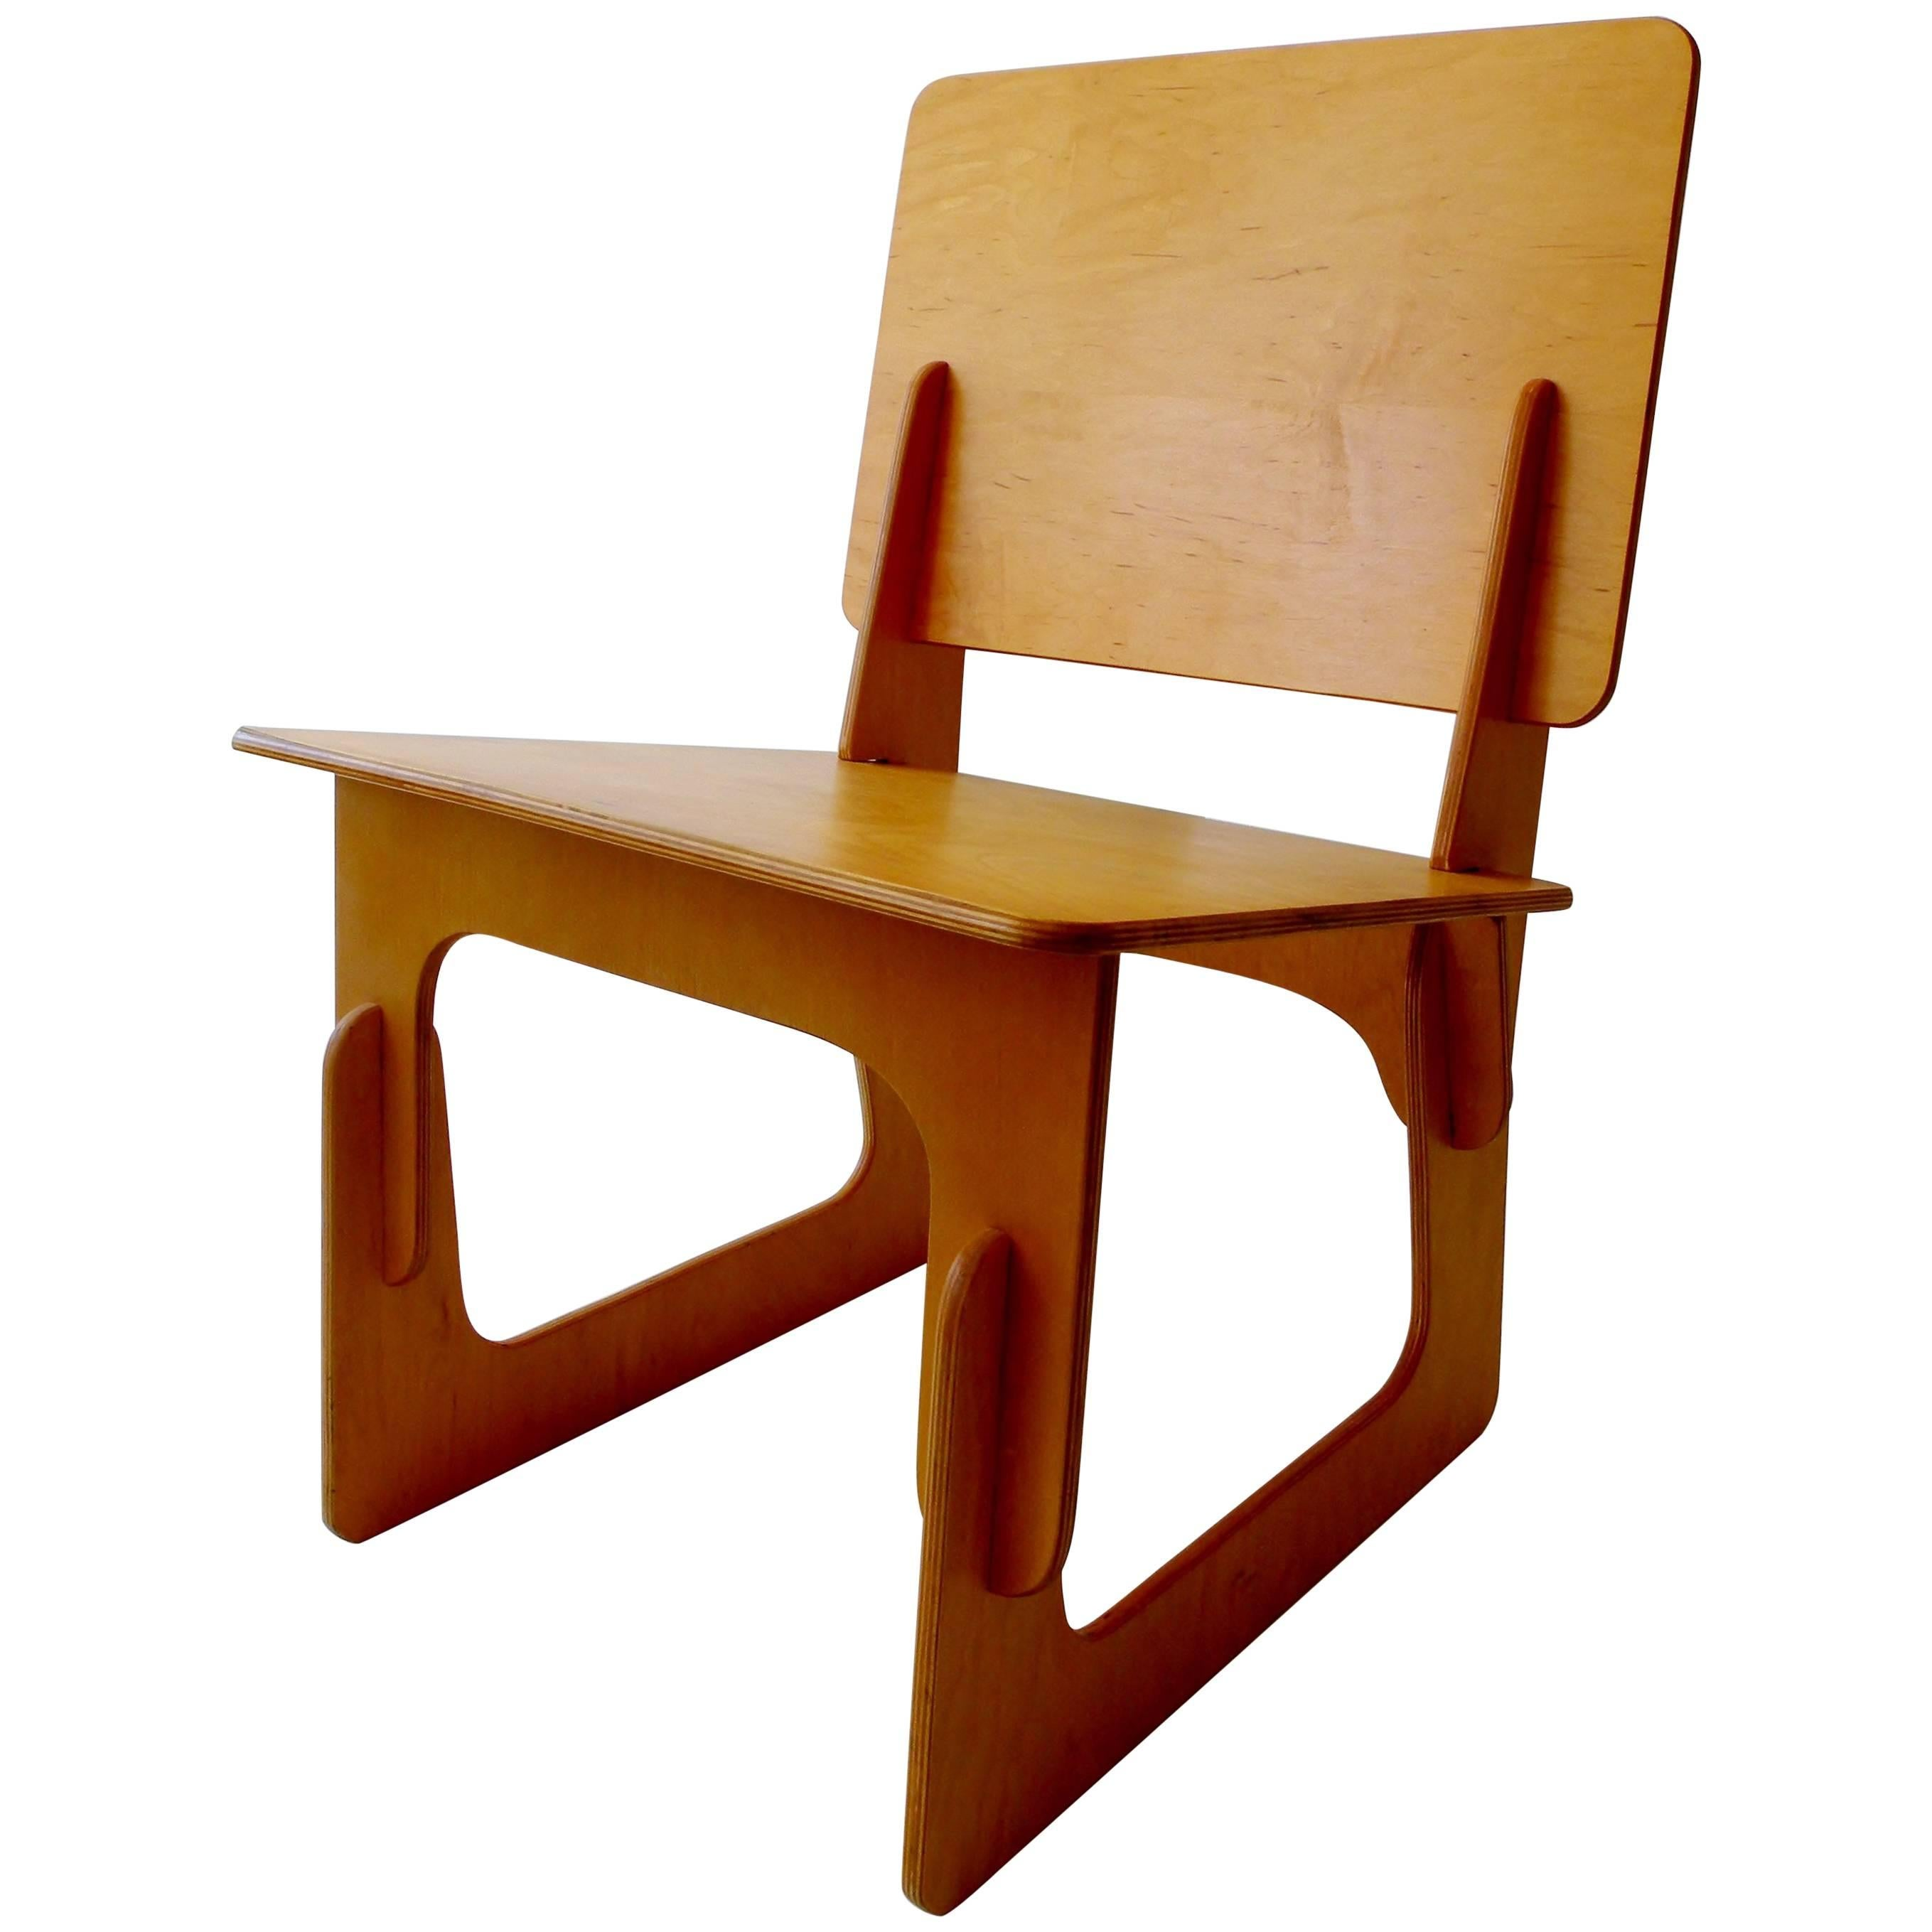 Lovely Post War Knockdown Furniture Co Plywood Lounge Chair For Sale